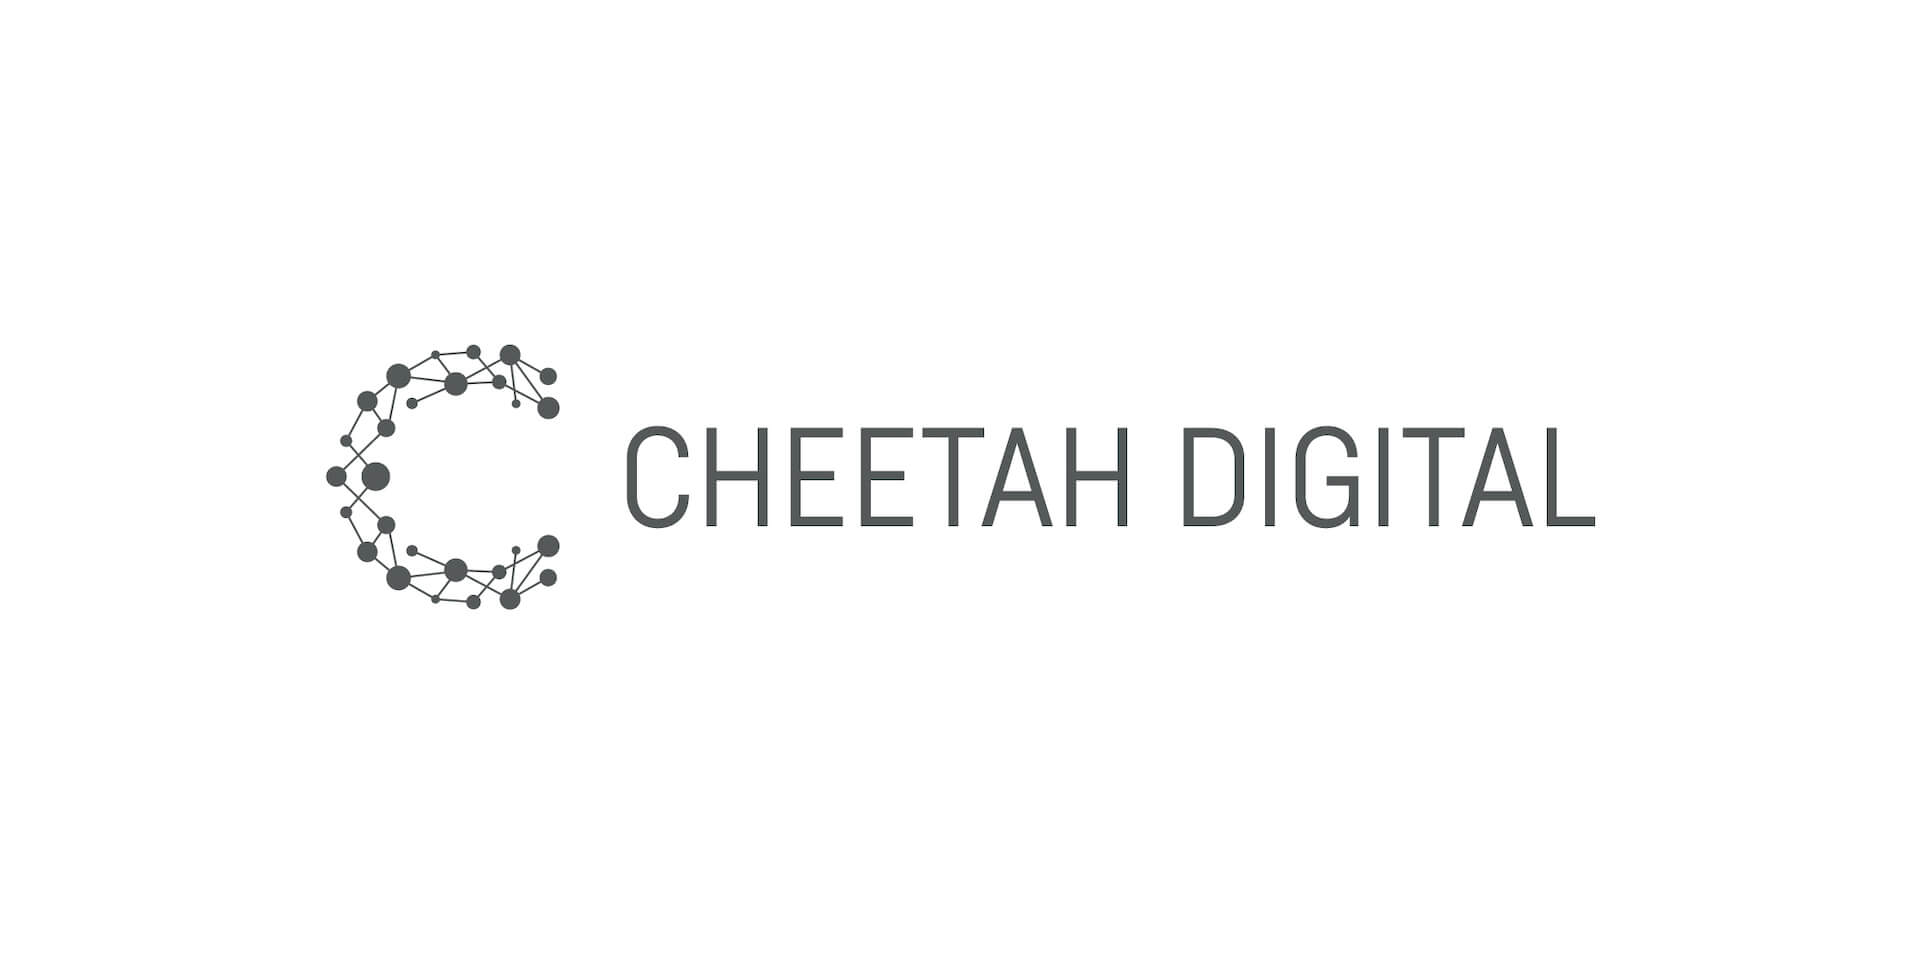 Cheetah Digital's acquisition of Wayin Inc. aims to bring first-and 'zero-party' data to marketers